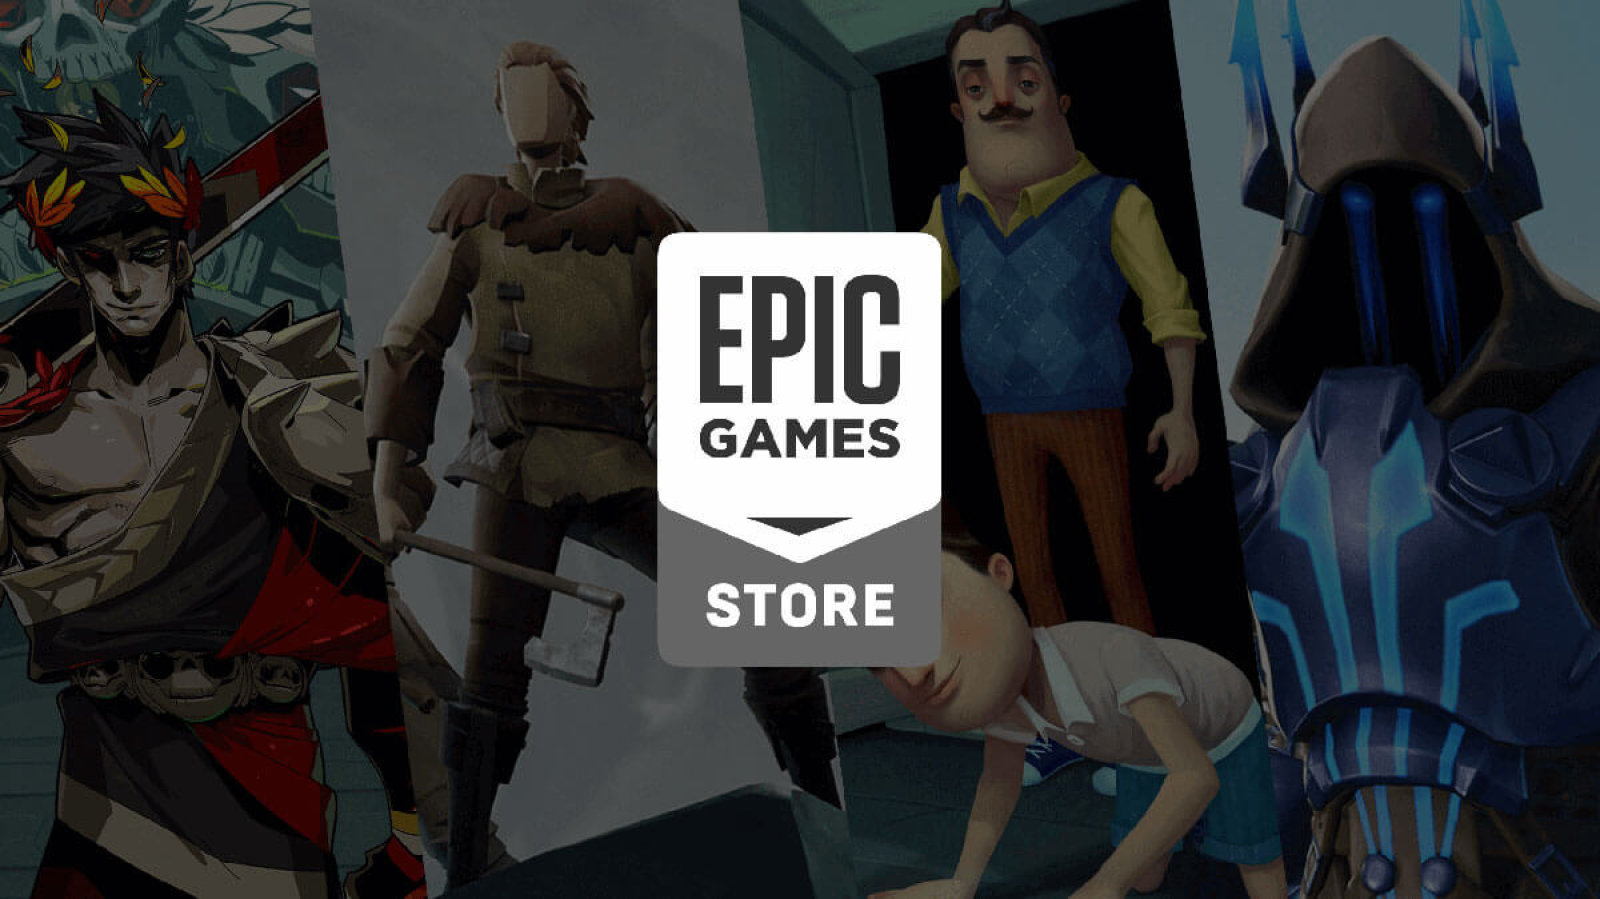 Epic responds to accusations of Steam data mining